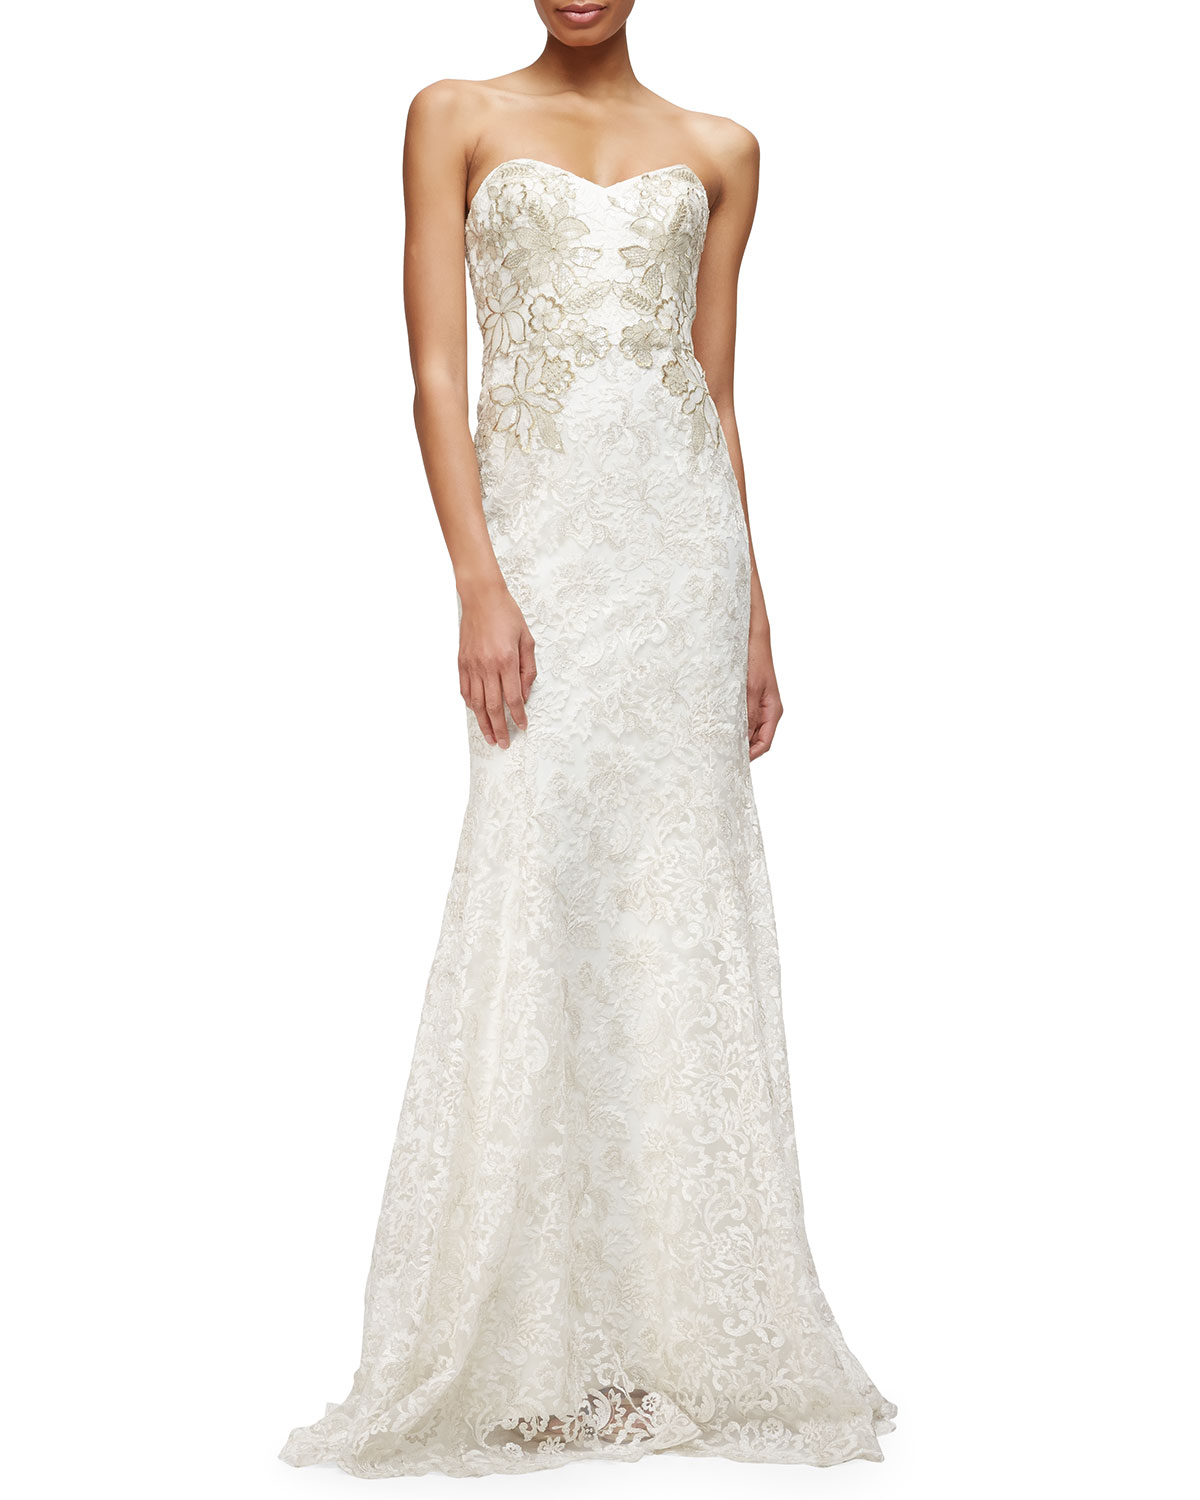 Notte by marchesa Strapless Sweetheart Lace Mermaid Gown